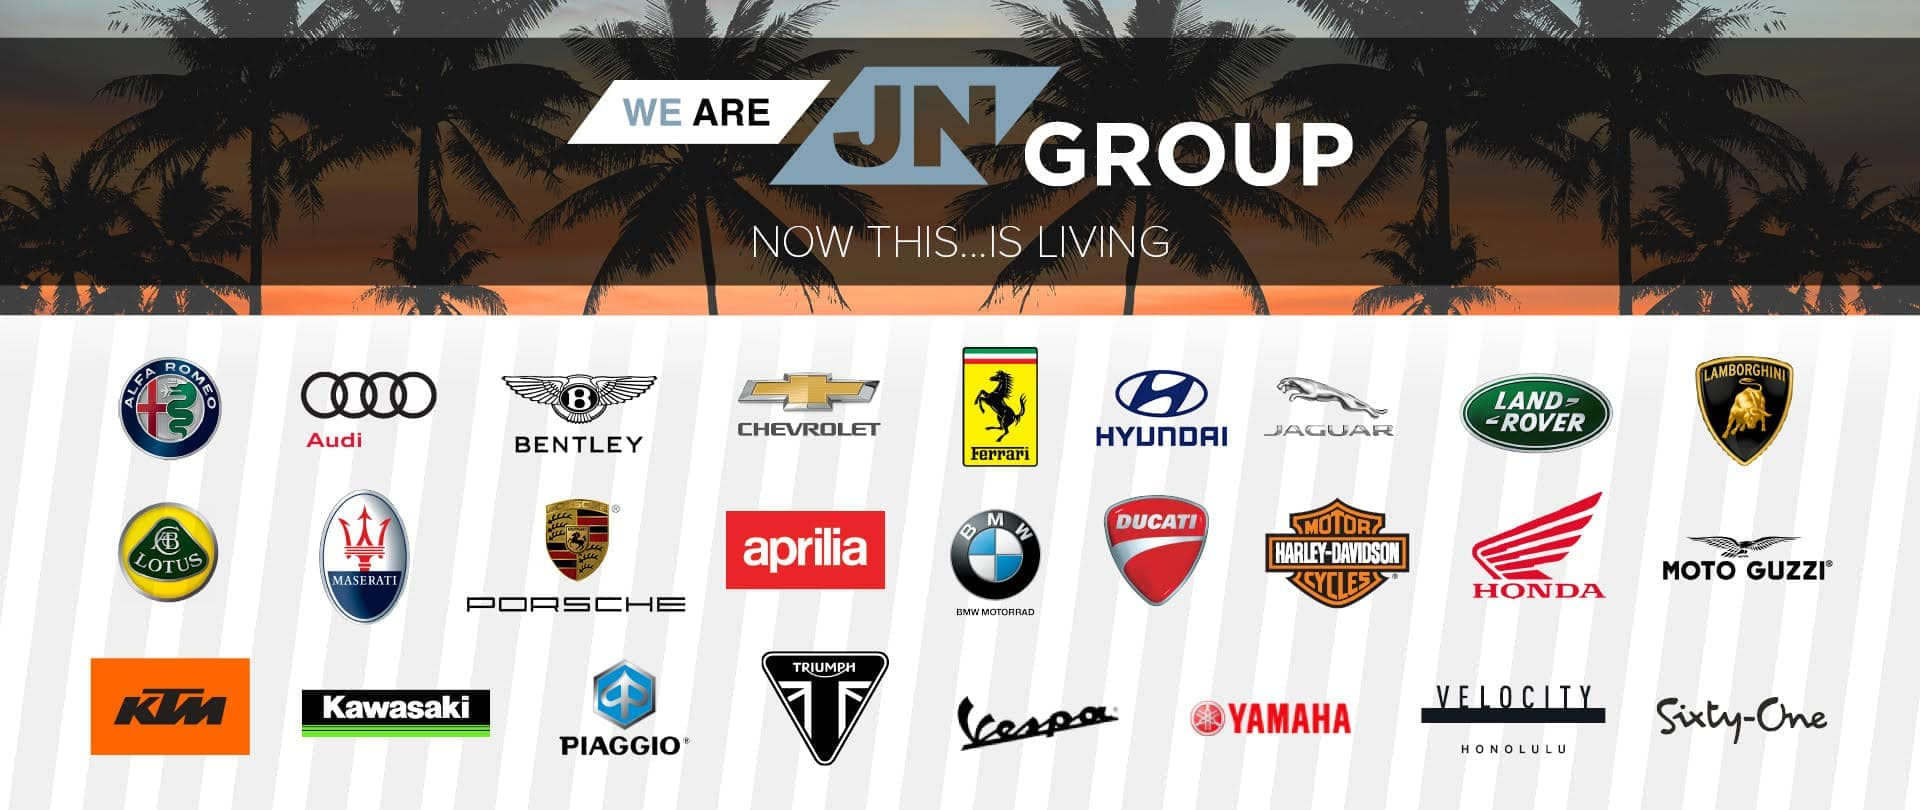 jn group logo image